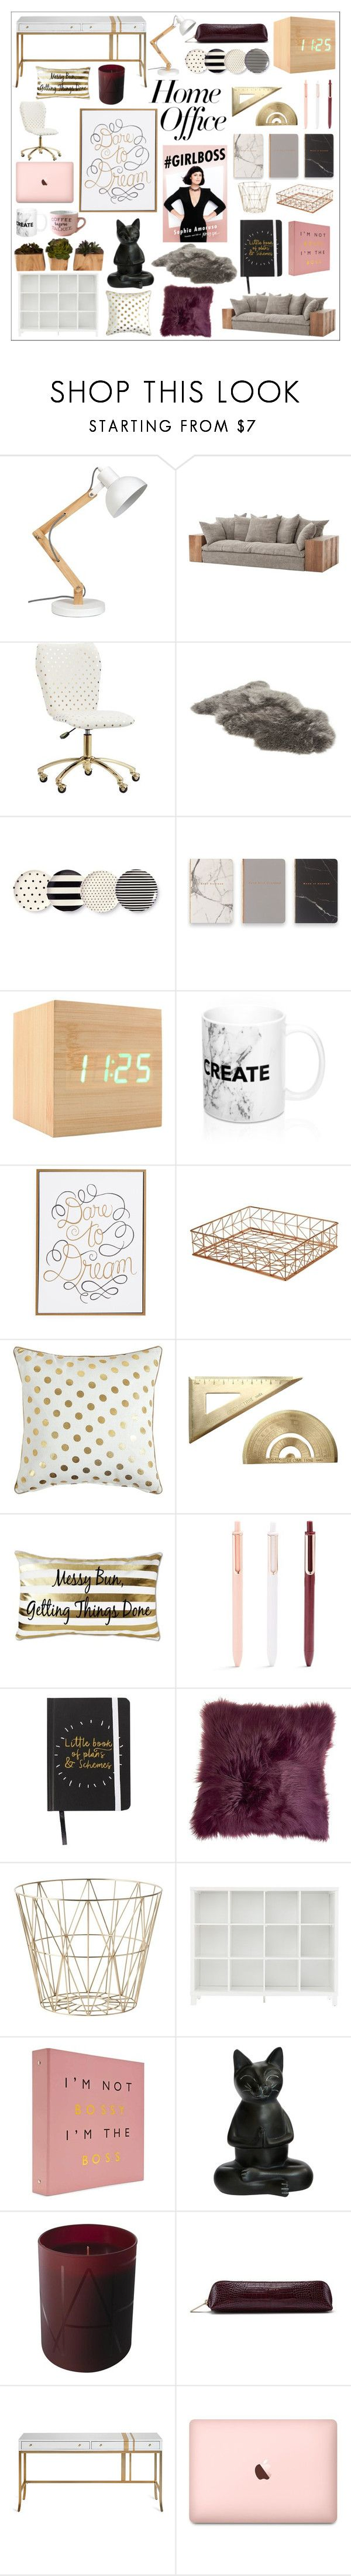 """""""Home Office"""" by alexandrammarekbeauty ❤ liked on Polyvore featuring interior, interiors, interior design, home, home decor, interior decorating, PBteen, UGG, Kate Spade and Eccolo"""